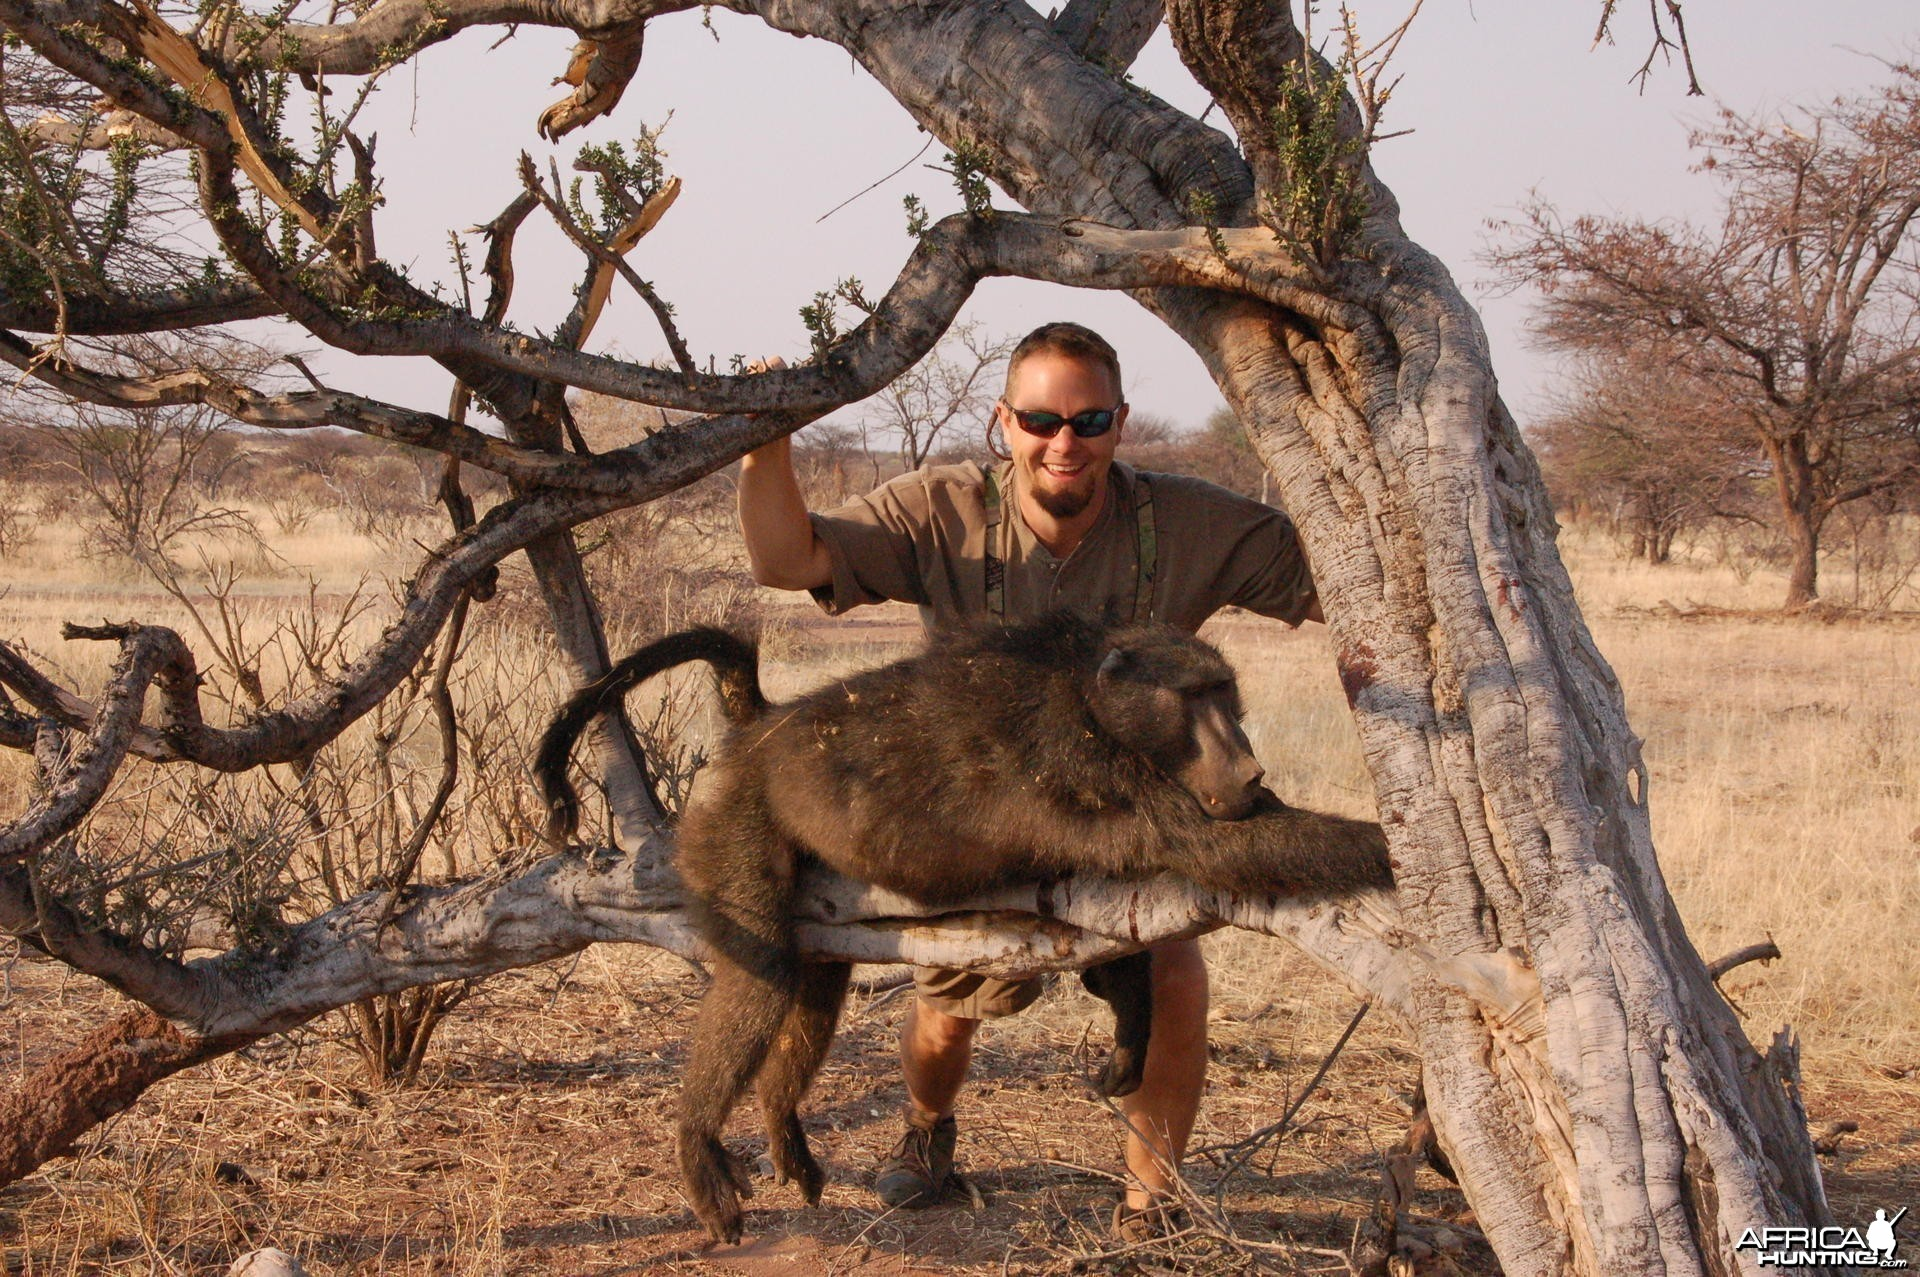 Chacma Baboon hunted in Namibia